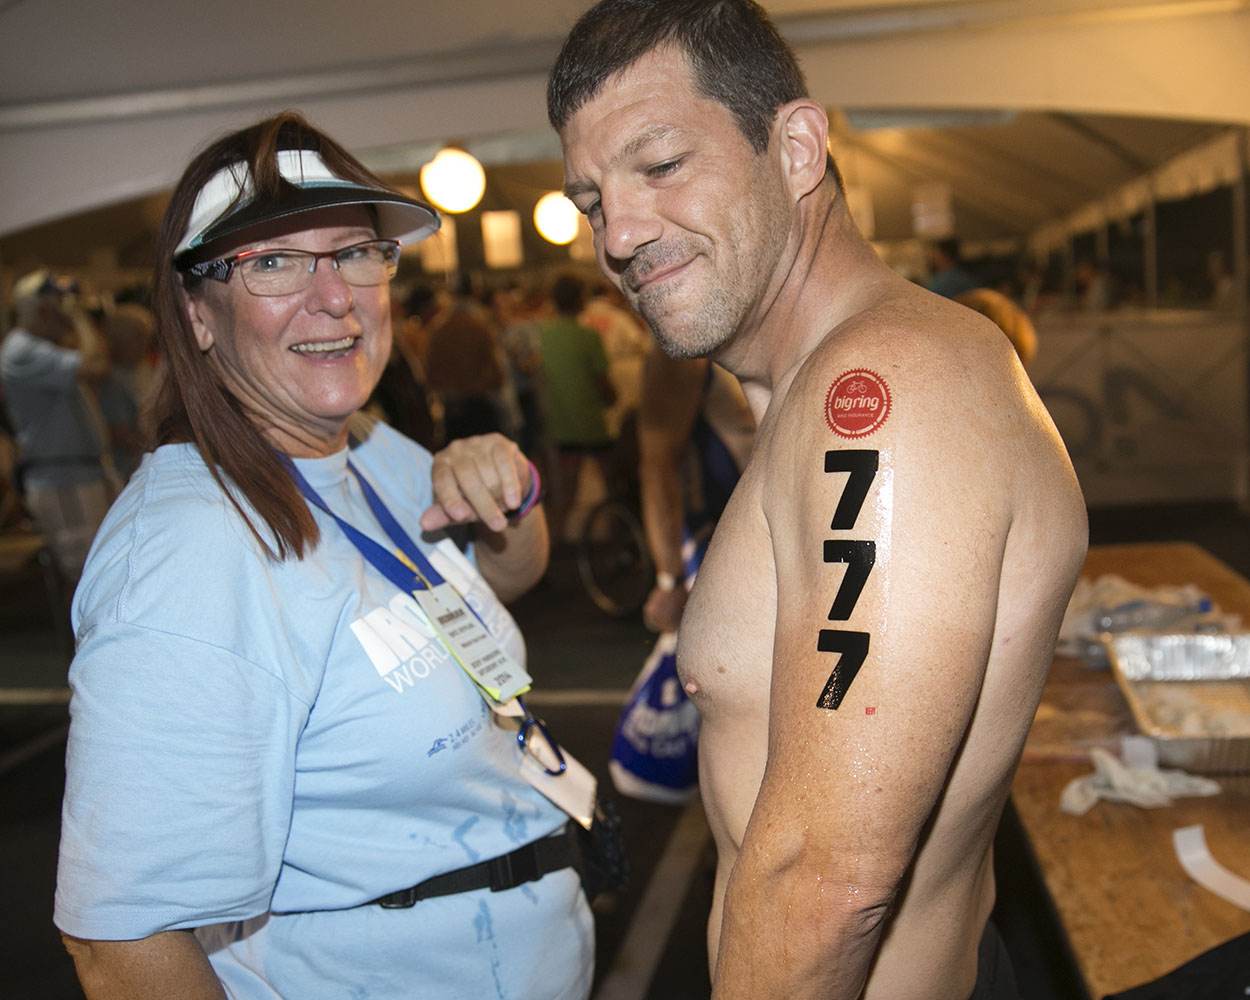 A race official places a body number on athlete Mike Avadikian before the start of the 2014 IRONMAN World Championship.